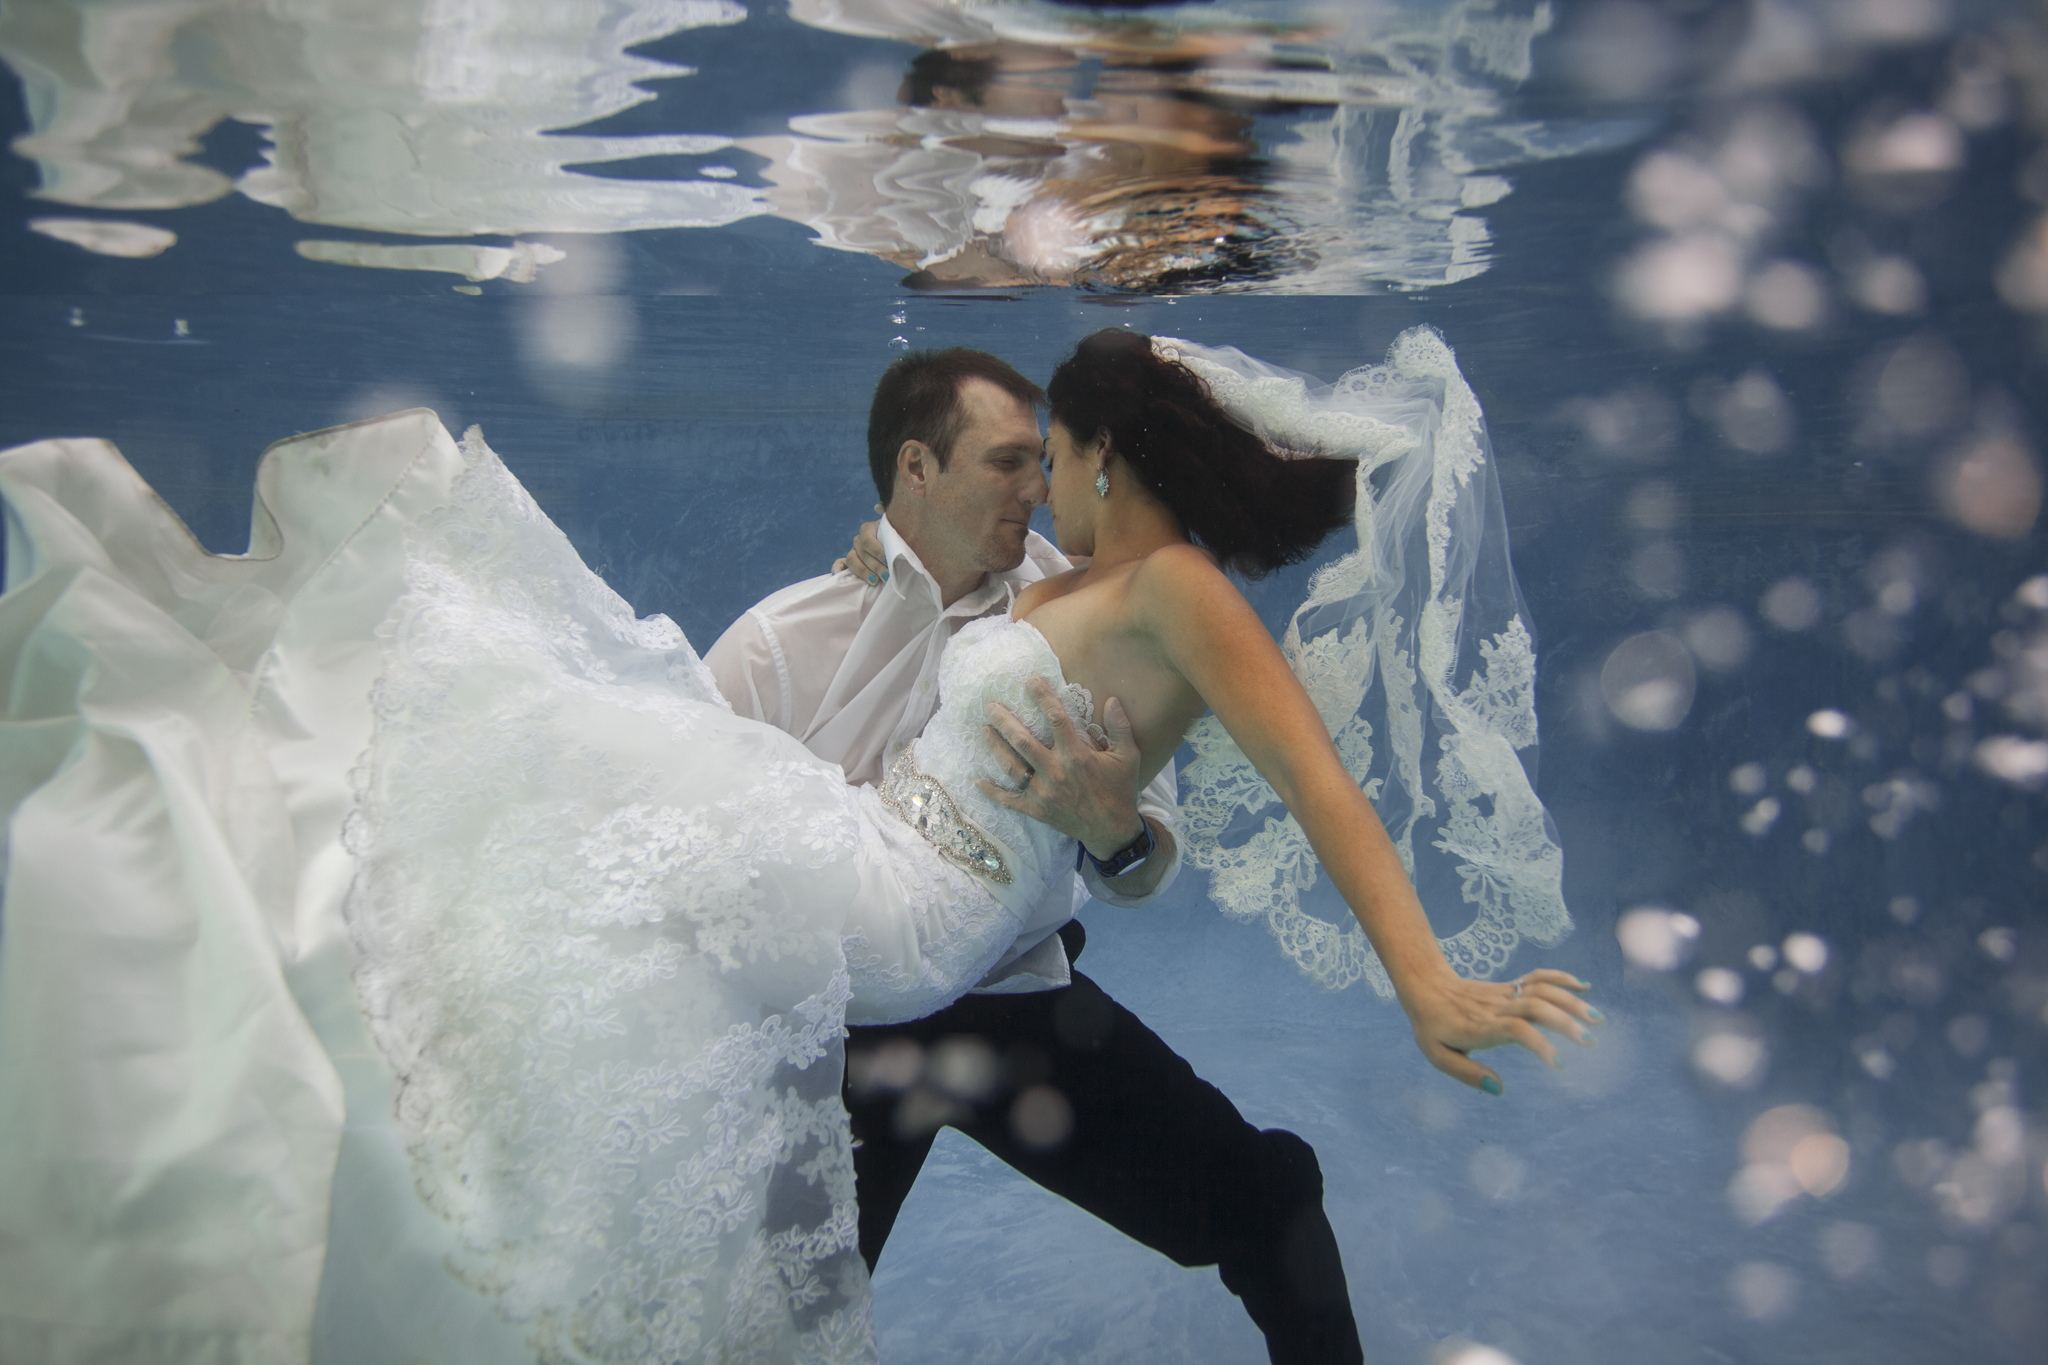 underwater trash the wedding dress photos in a pool